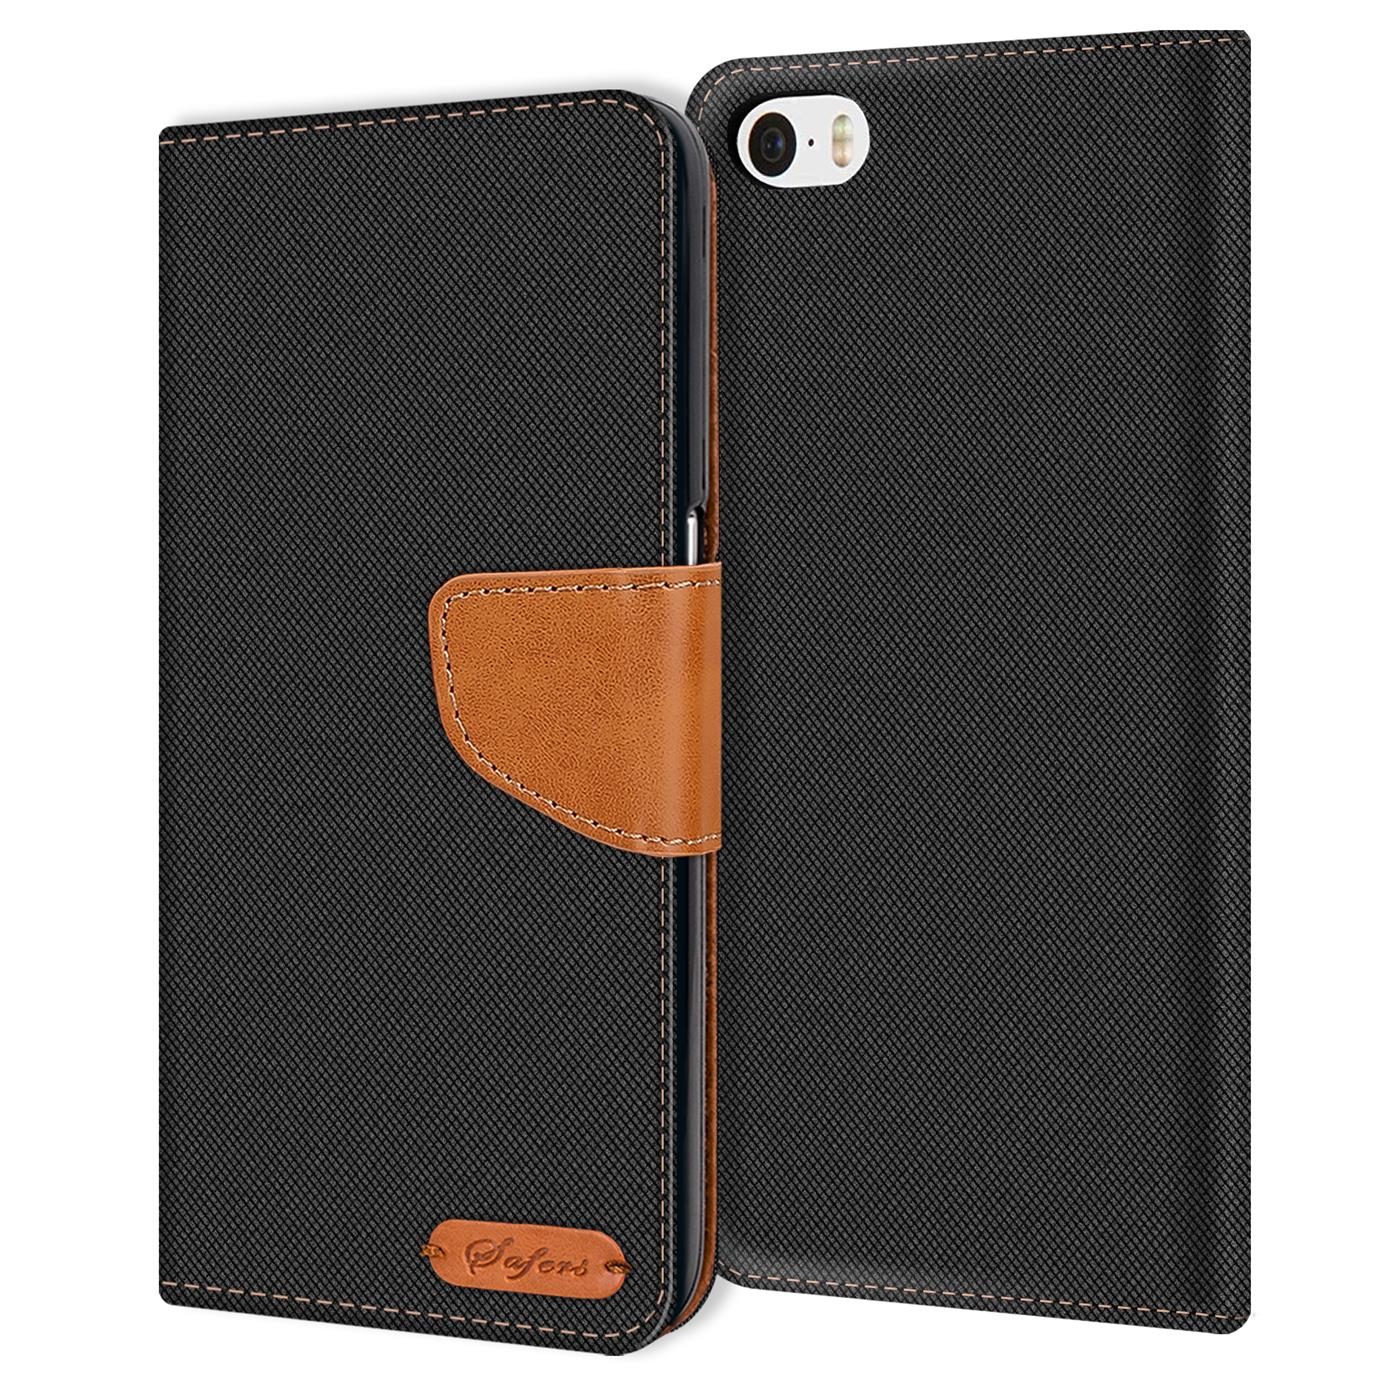 Apple-iPhone-5-5s-SE-Phone-PU-Leather-Magnetic-Flip-Case-Wallet-Denim-Cover-Slim thumbnail 5